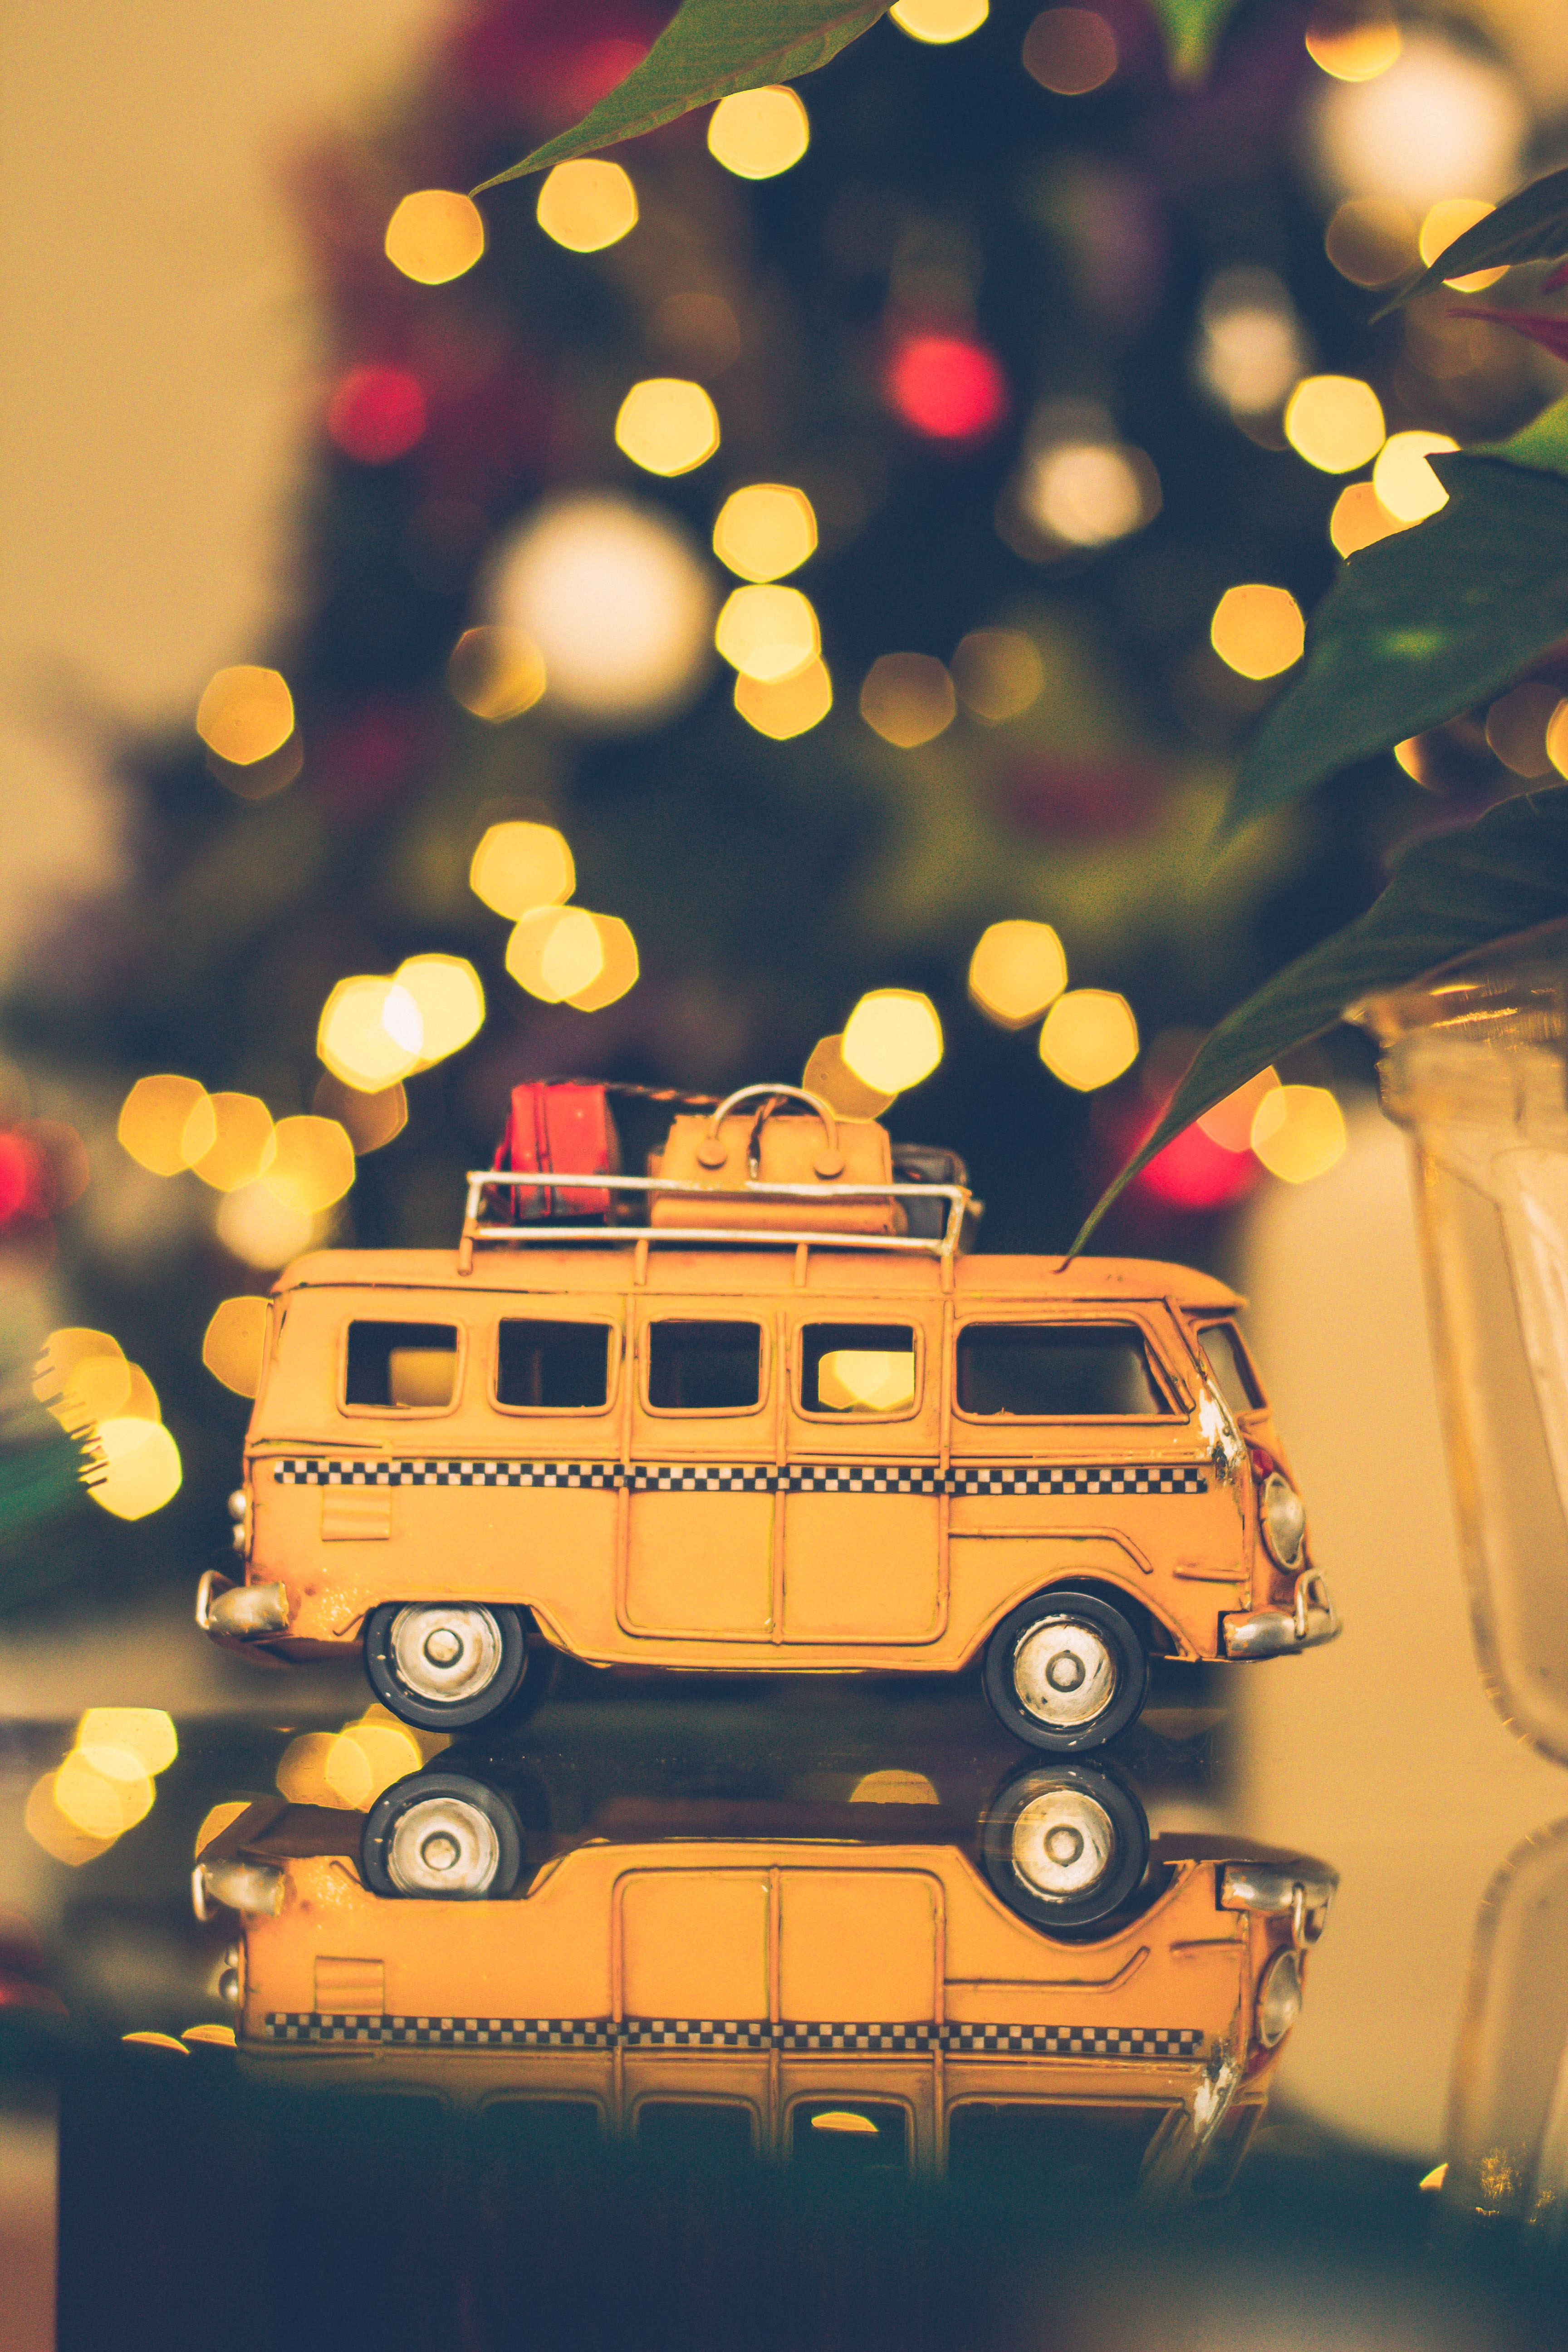 Macro Shot Photography of Brown Volkswagen Van Figure on Table, Blur, Design, Vintage, Vehicle, HQ Photo